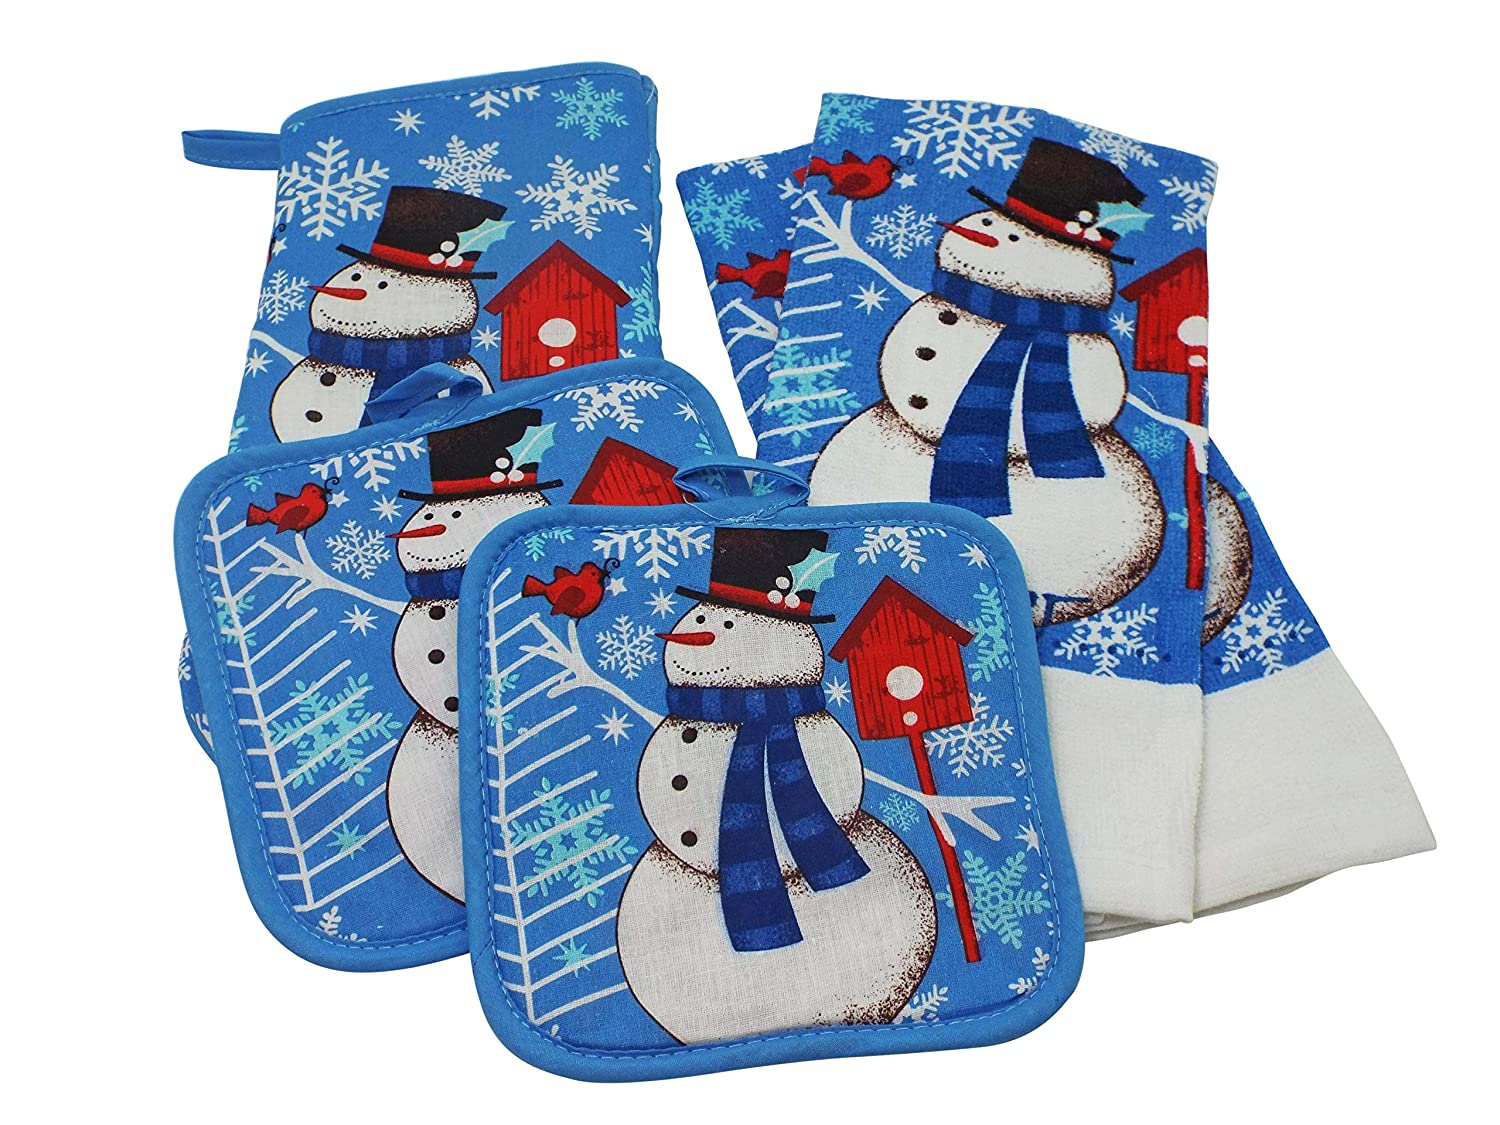 Snowman Kitchen towel and Linen Set - 2 Kitchen Towels, 2 Pot Holders, and 1 Oven Mitt